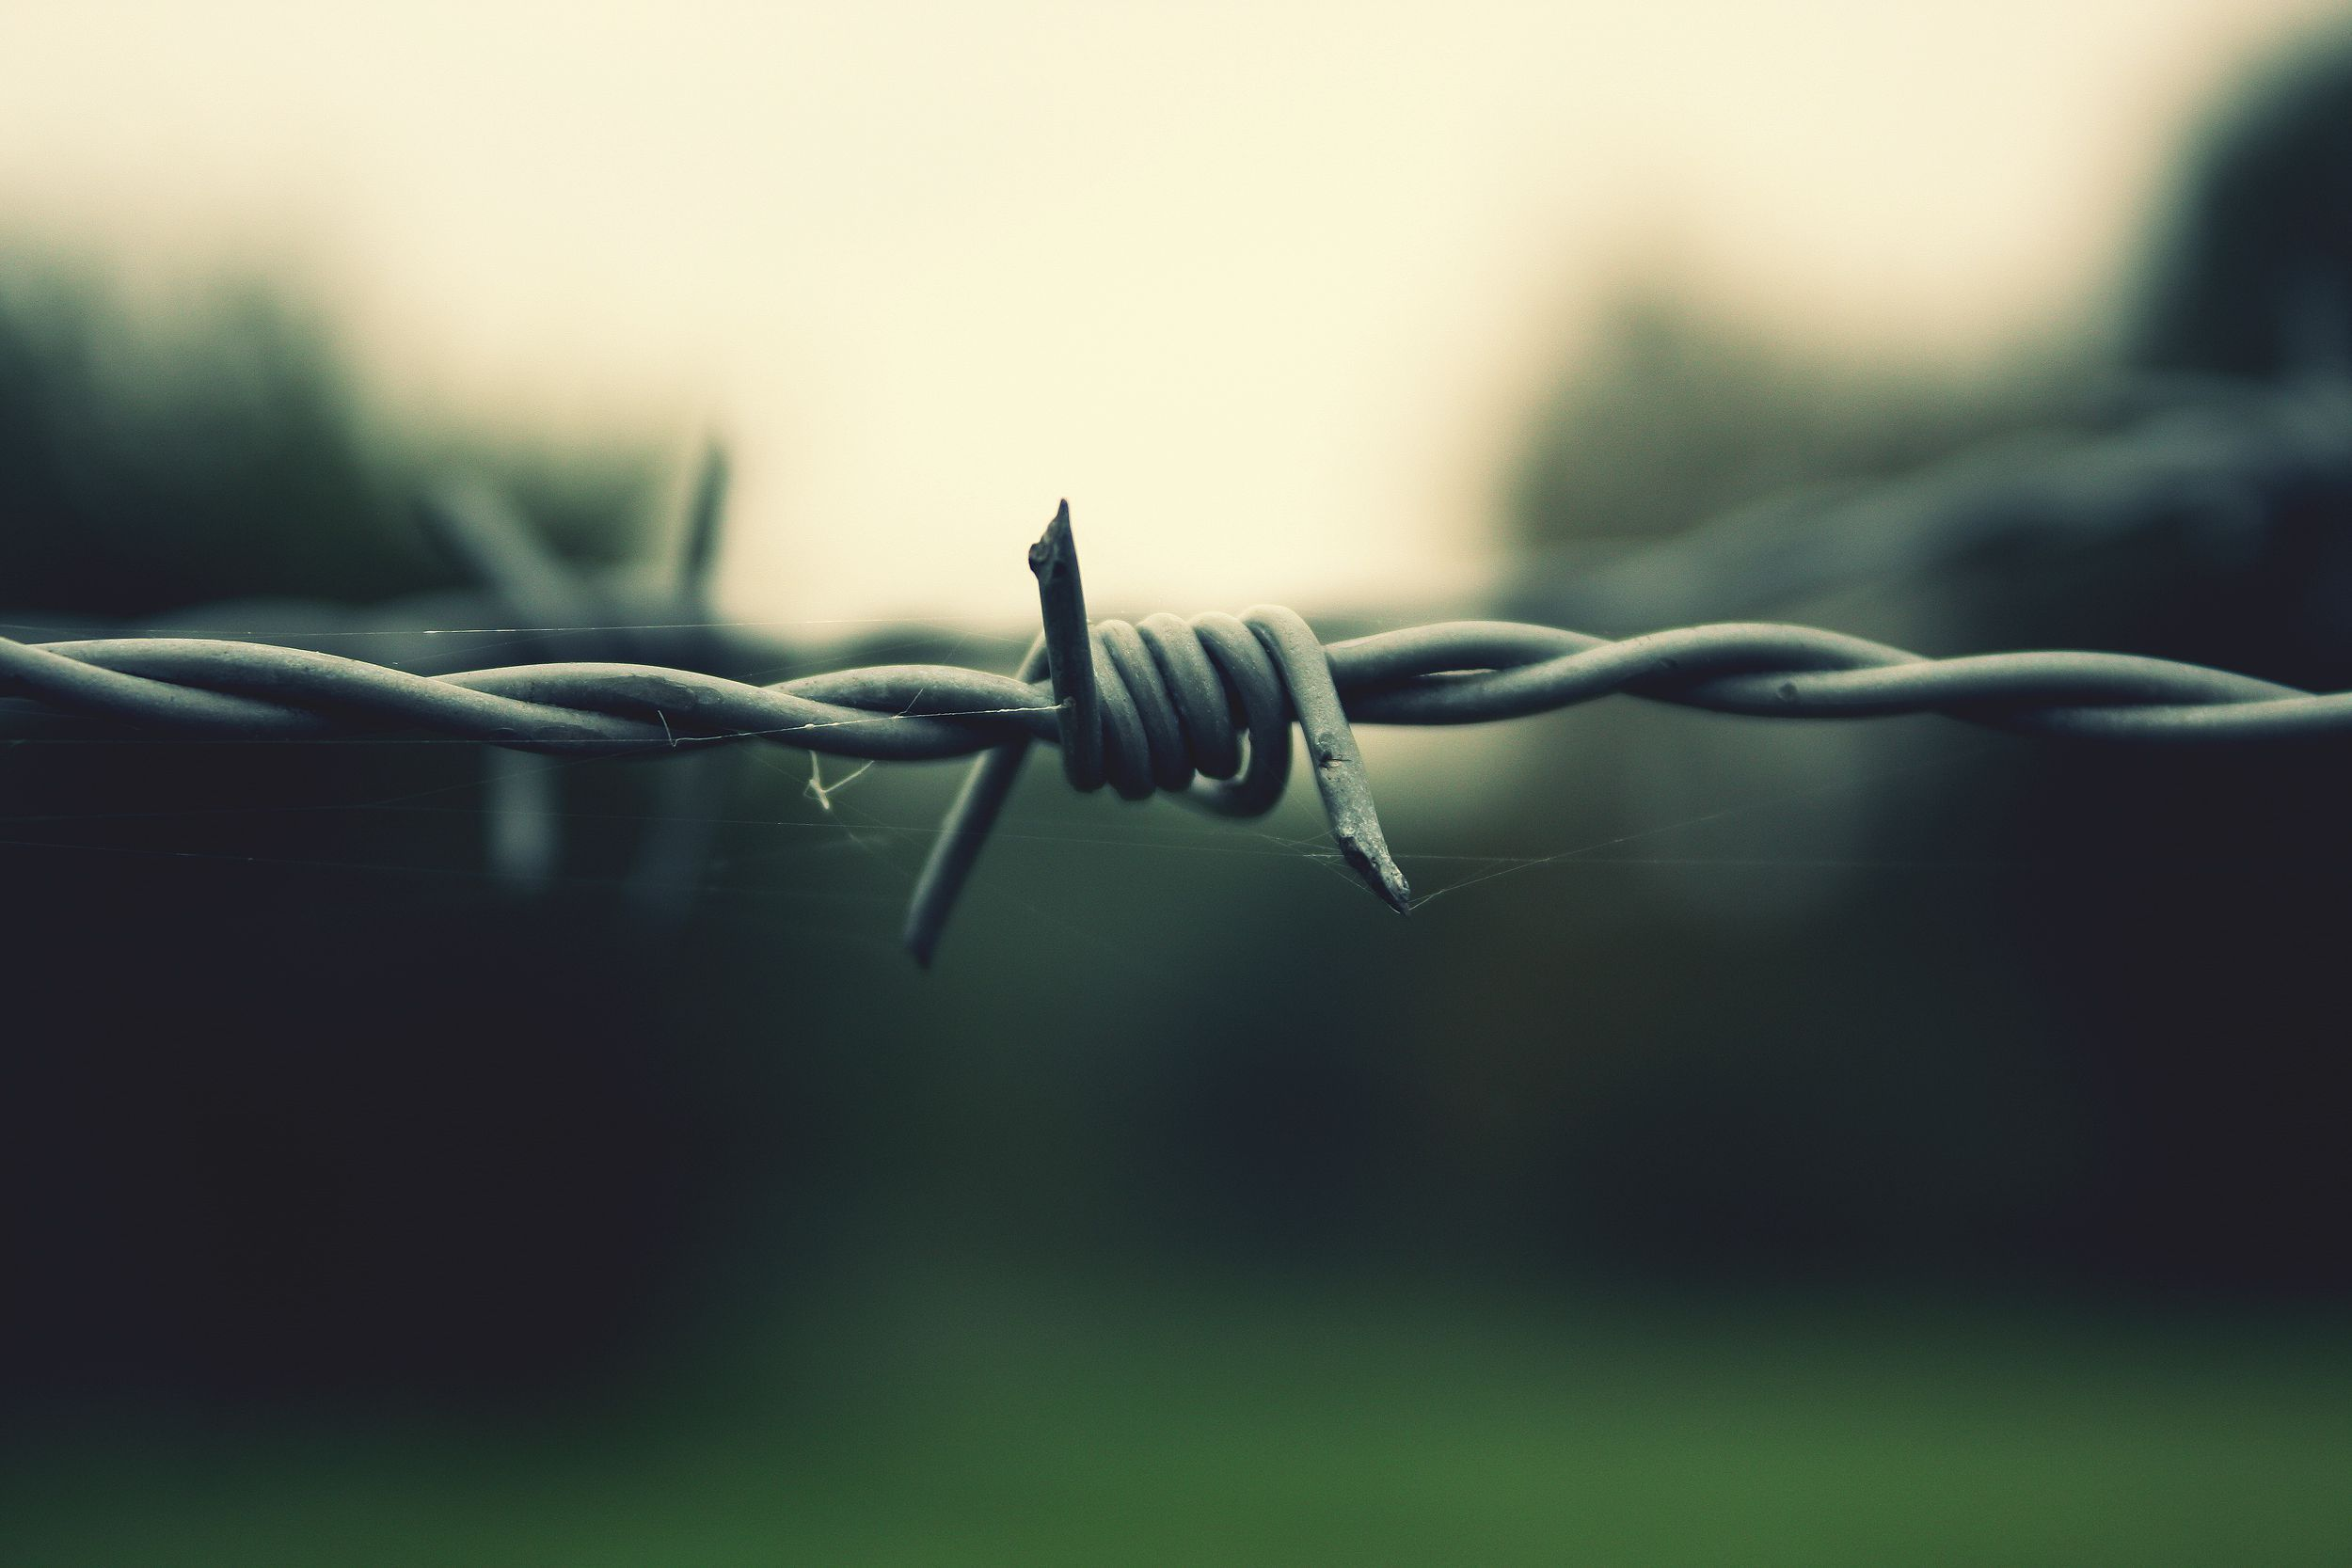 Barb Wire Wallpapers Backgrounds